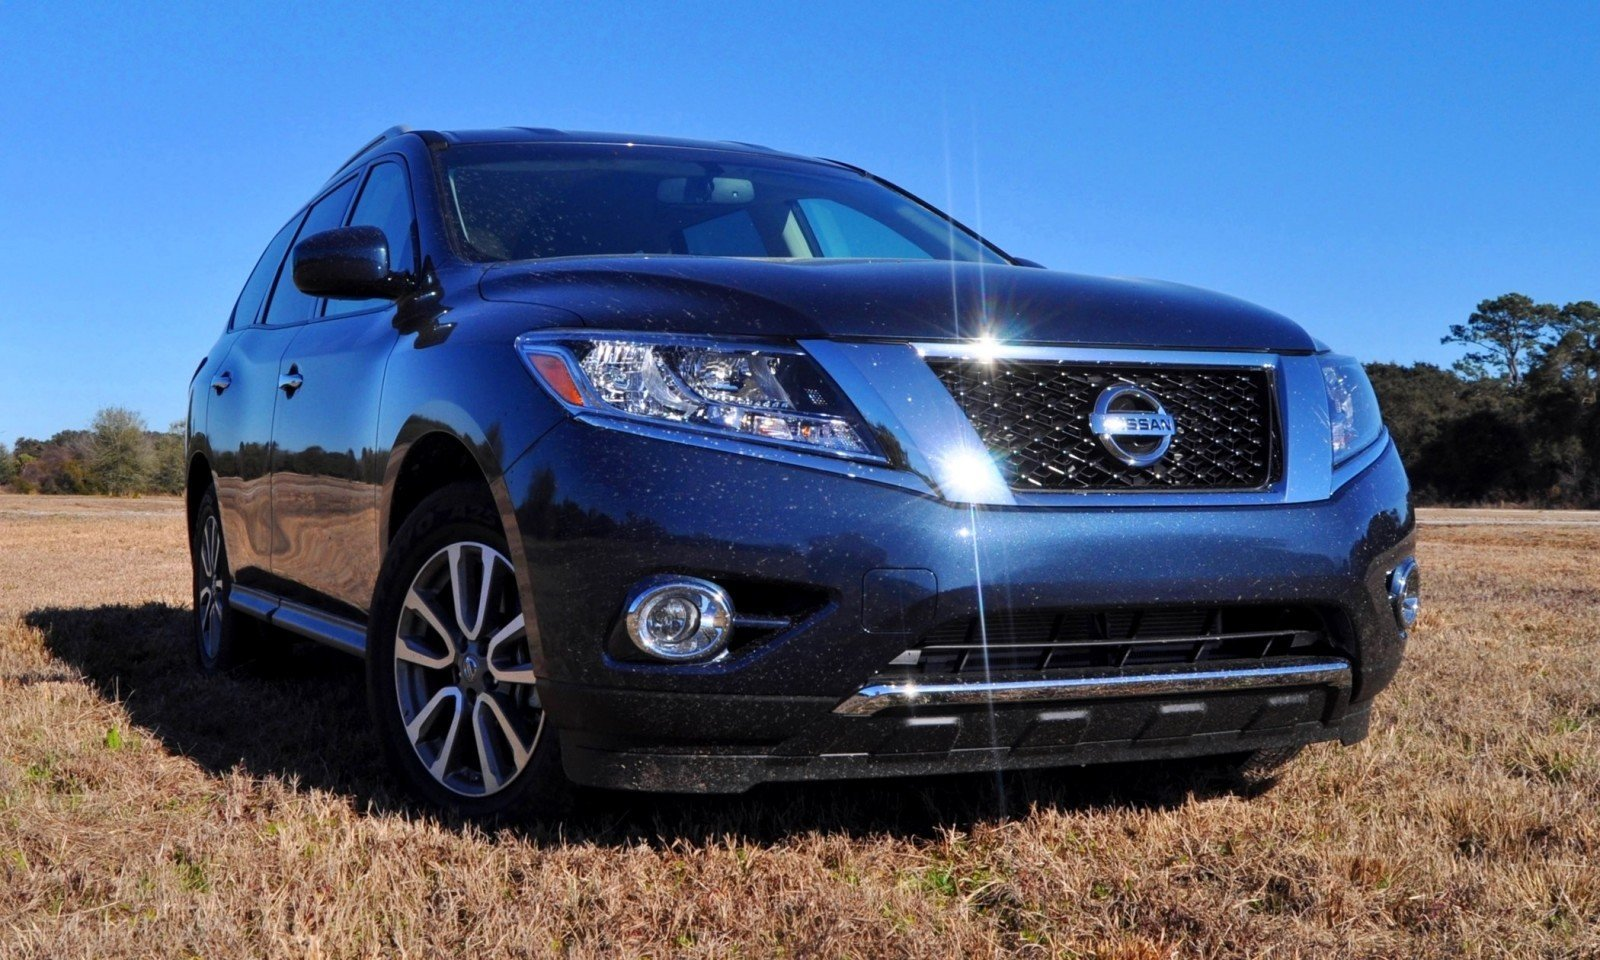 Road Test Review - 2015 Nissan Pathfinder SV 4WD 78